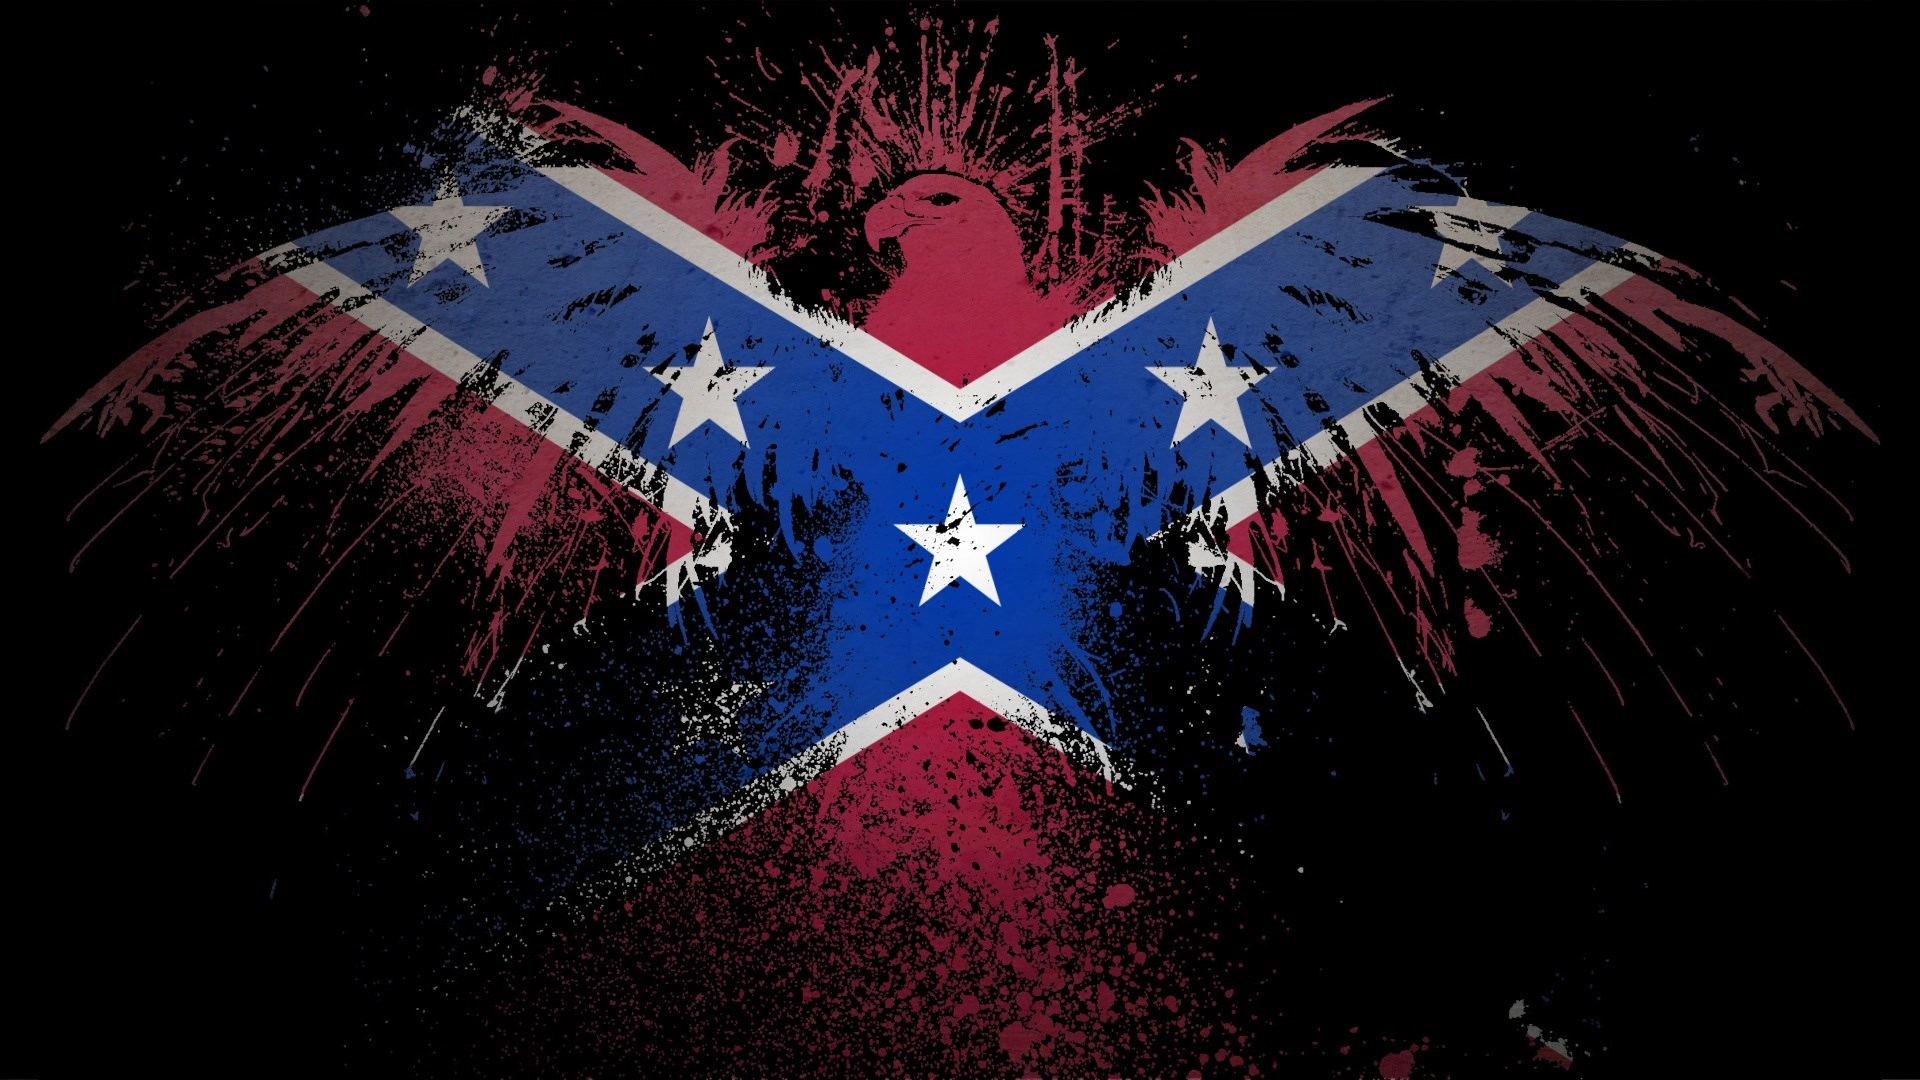 confederate-flag-photography-free-wallpaper-wpc5803642